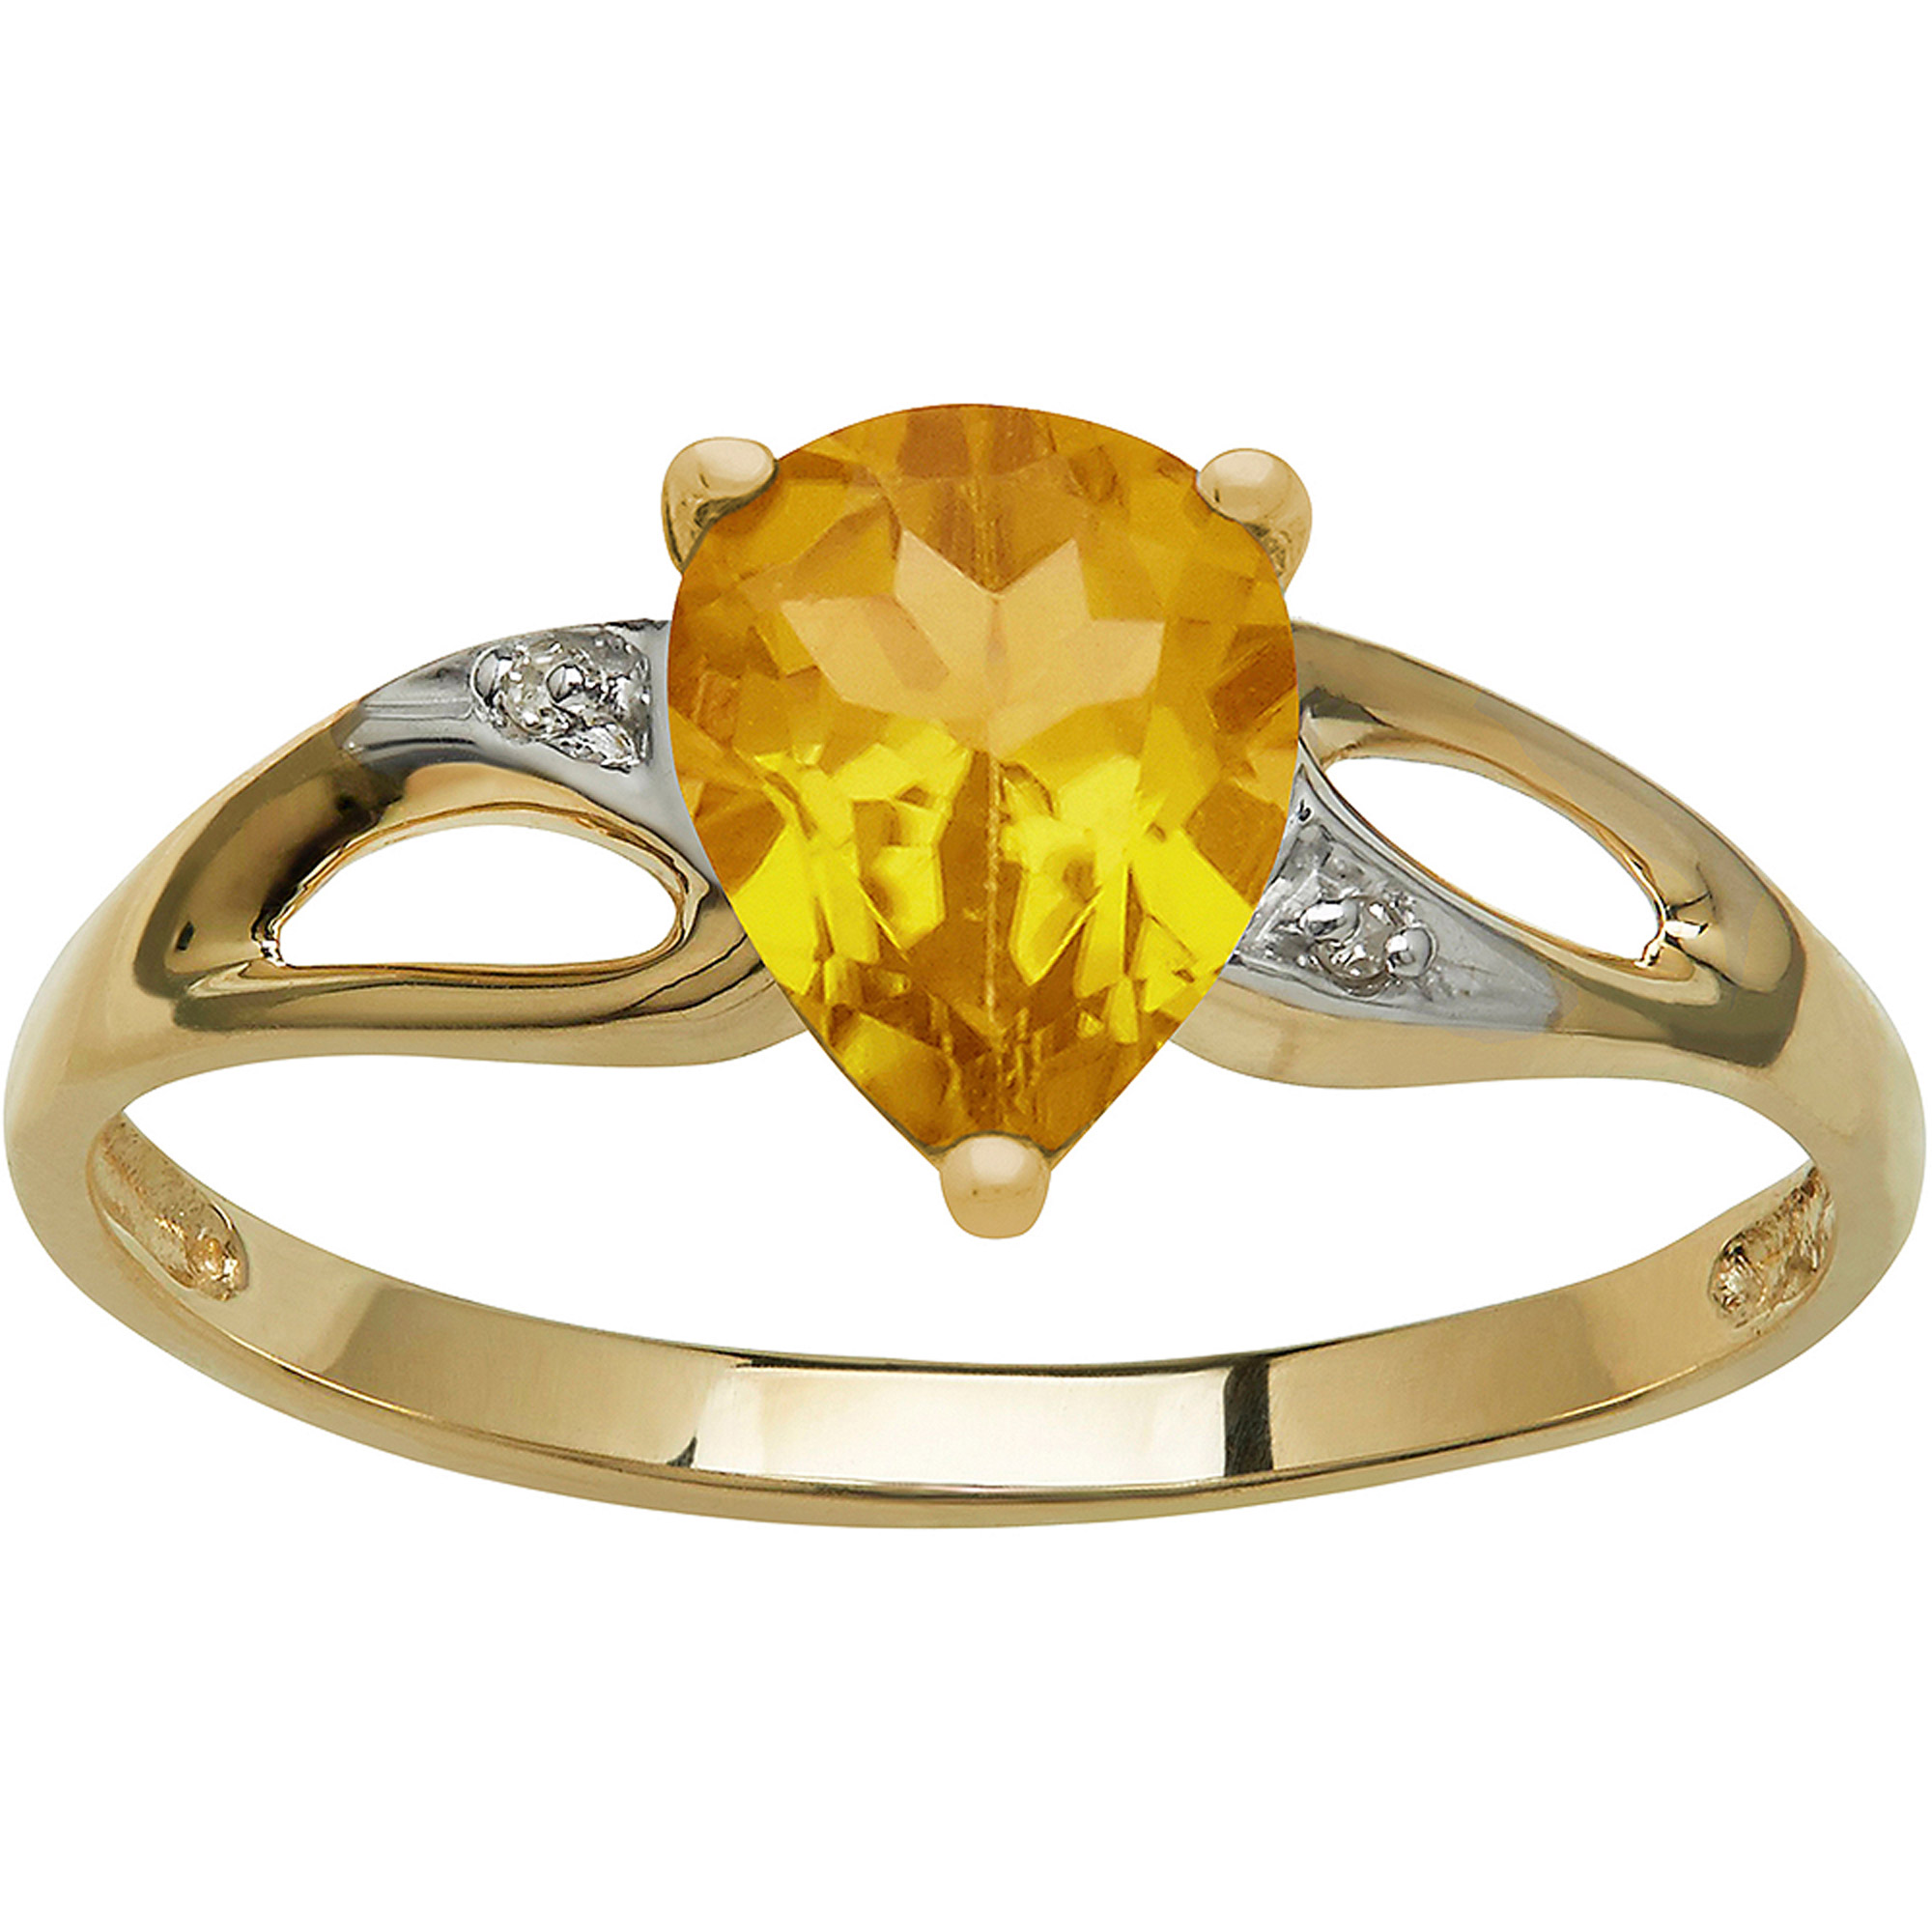 Citrine and Diamond Accent 10kt Yellow Gold Ring, Size 7